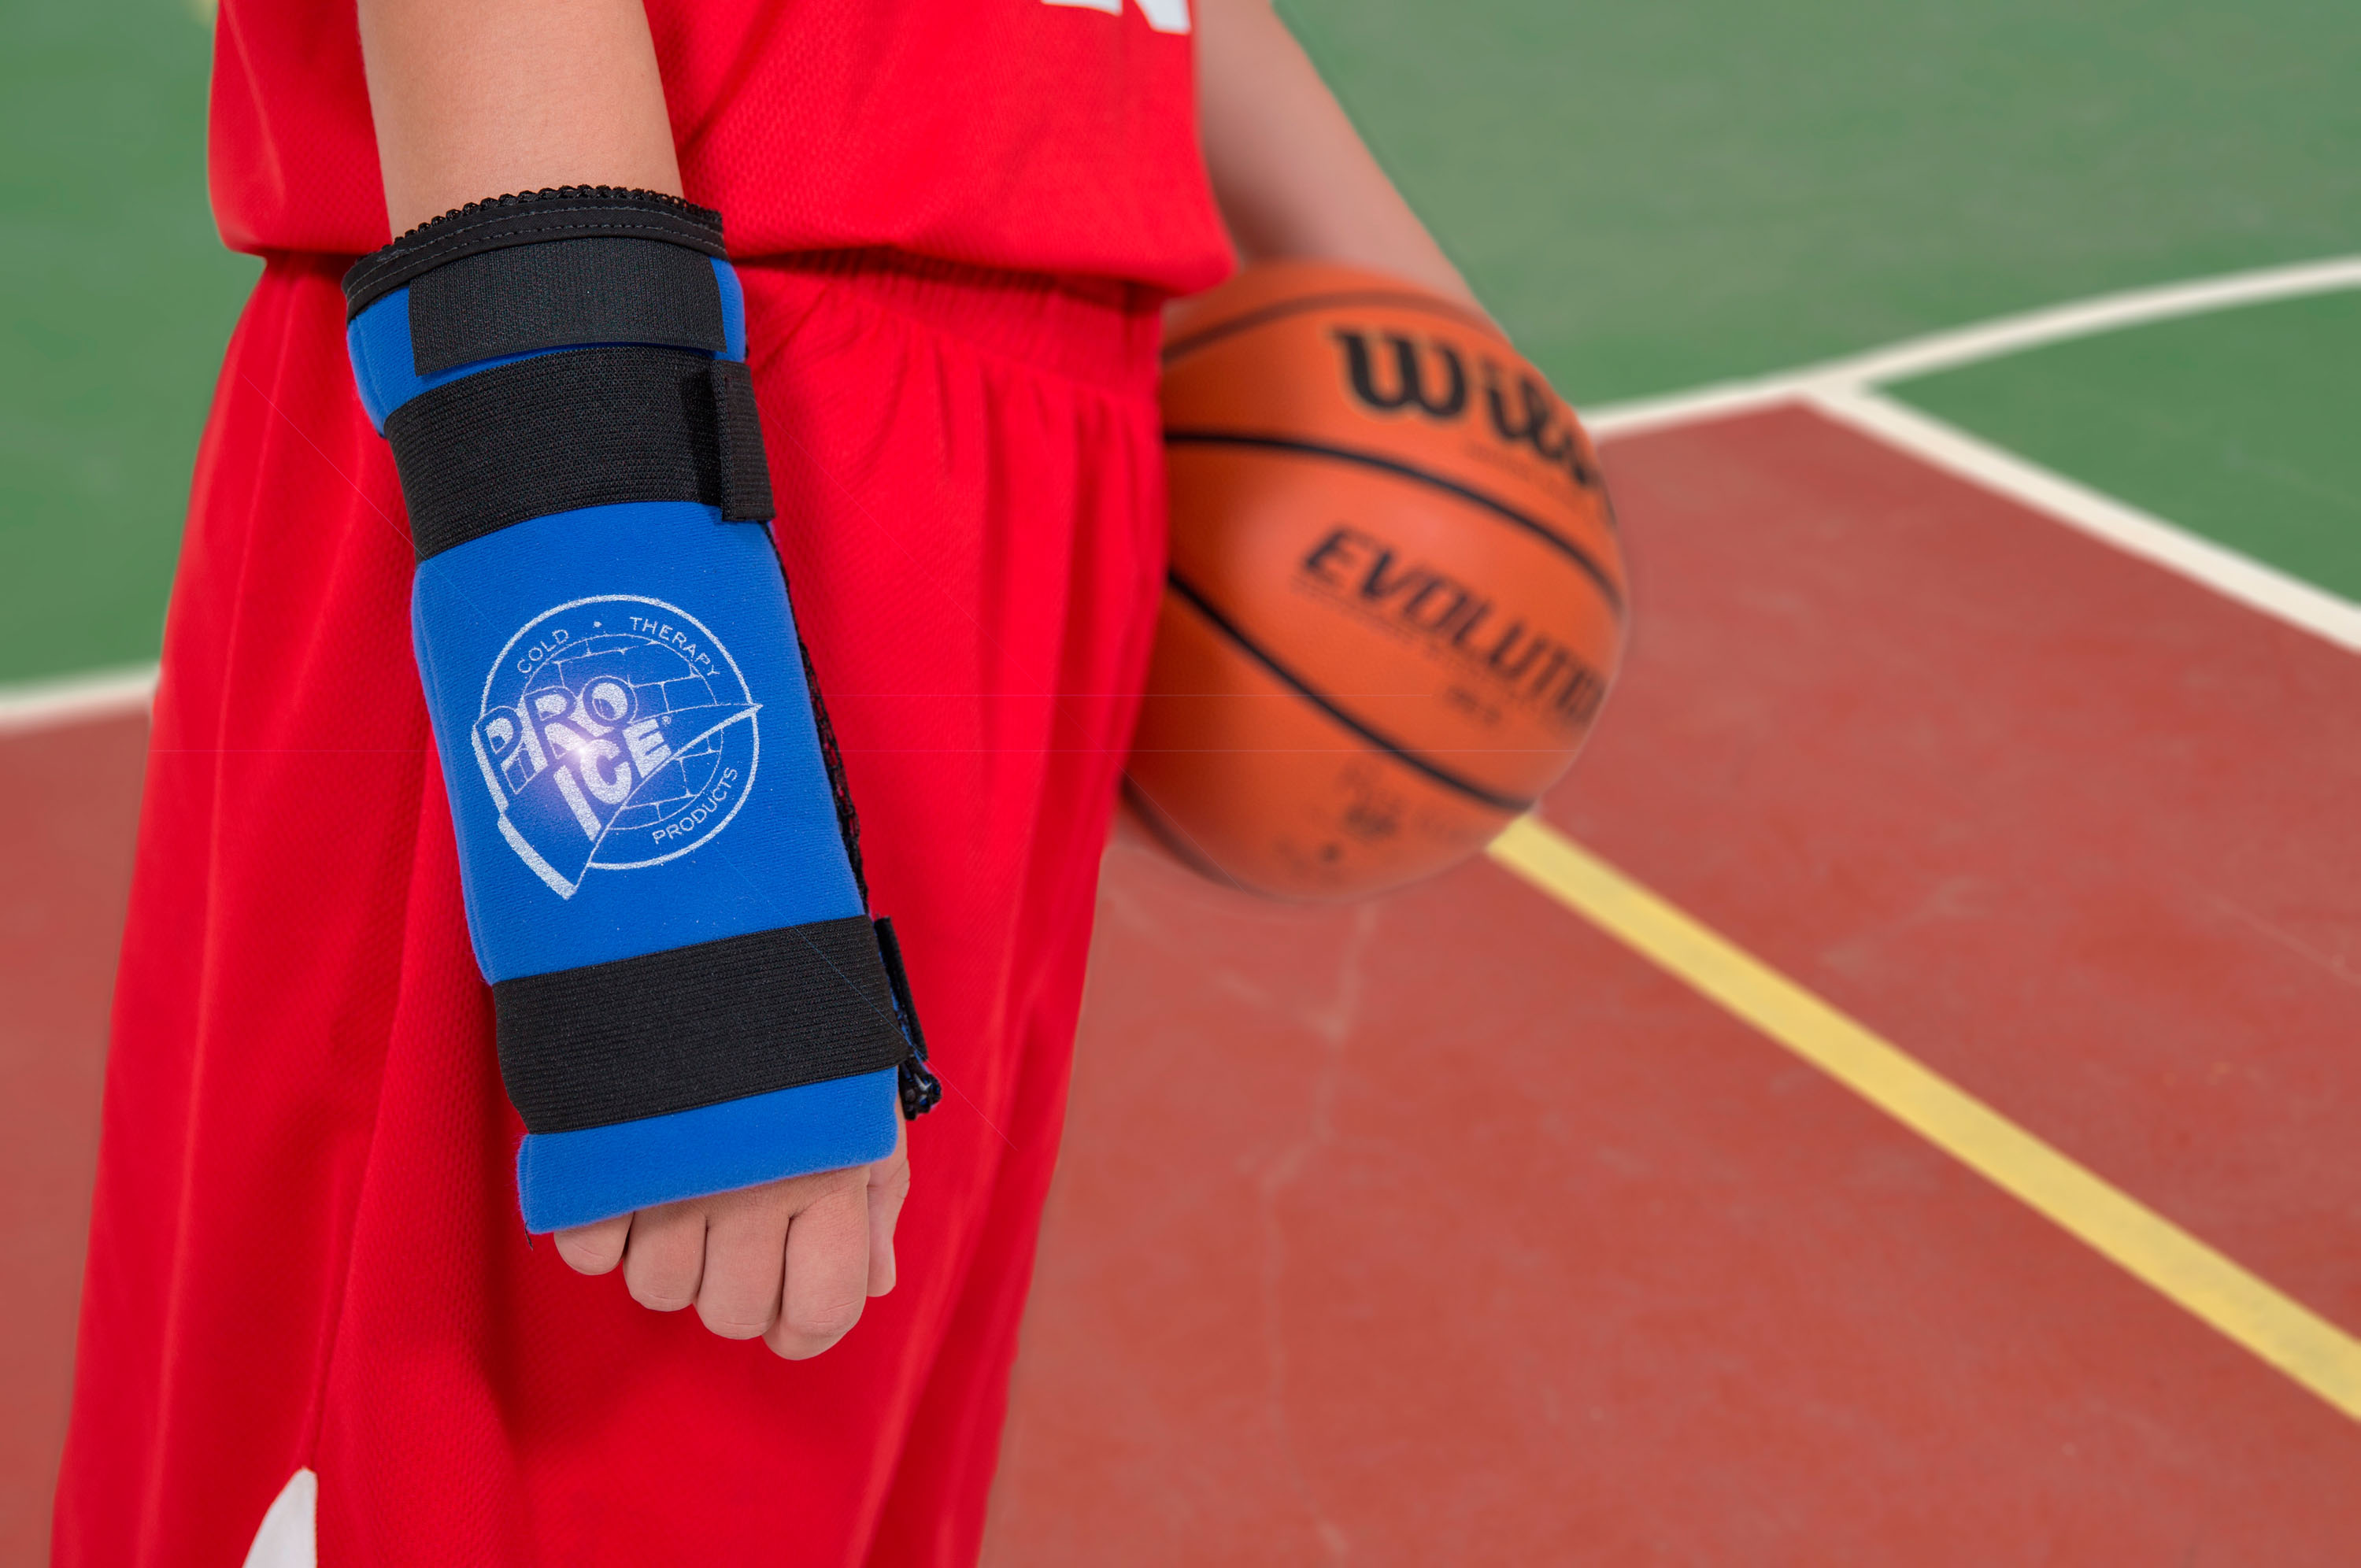 Pro Ice Wrist Ice Pack / Universal Ice Pack pi300